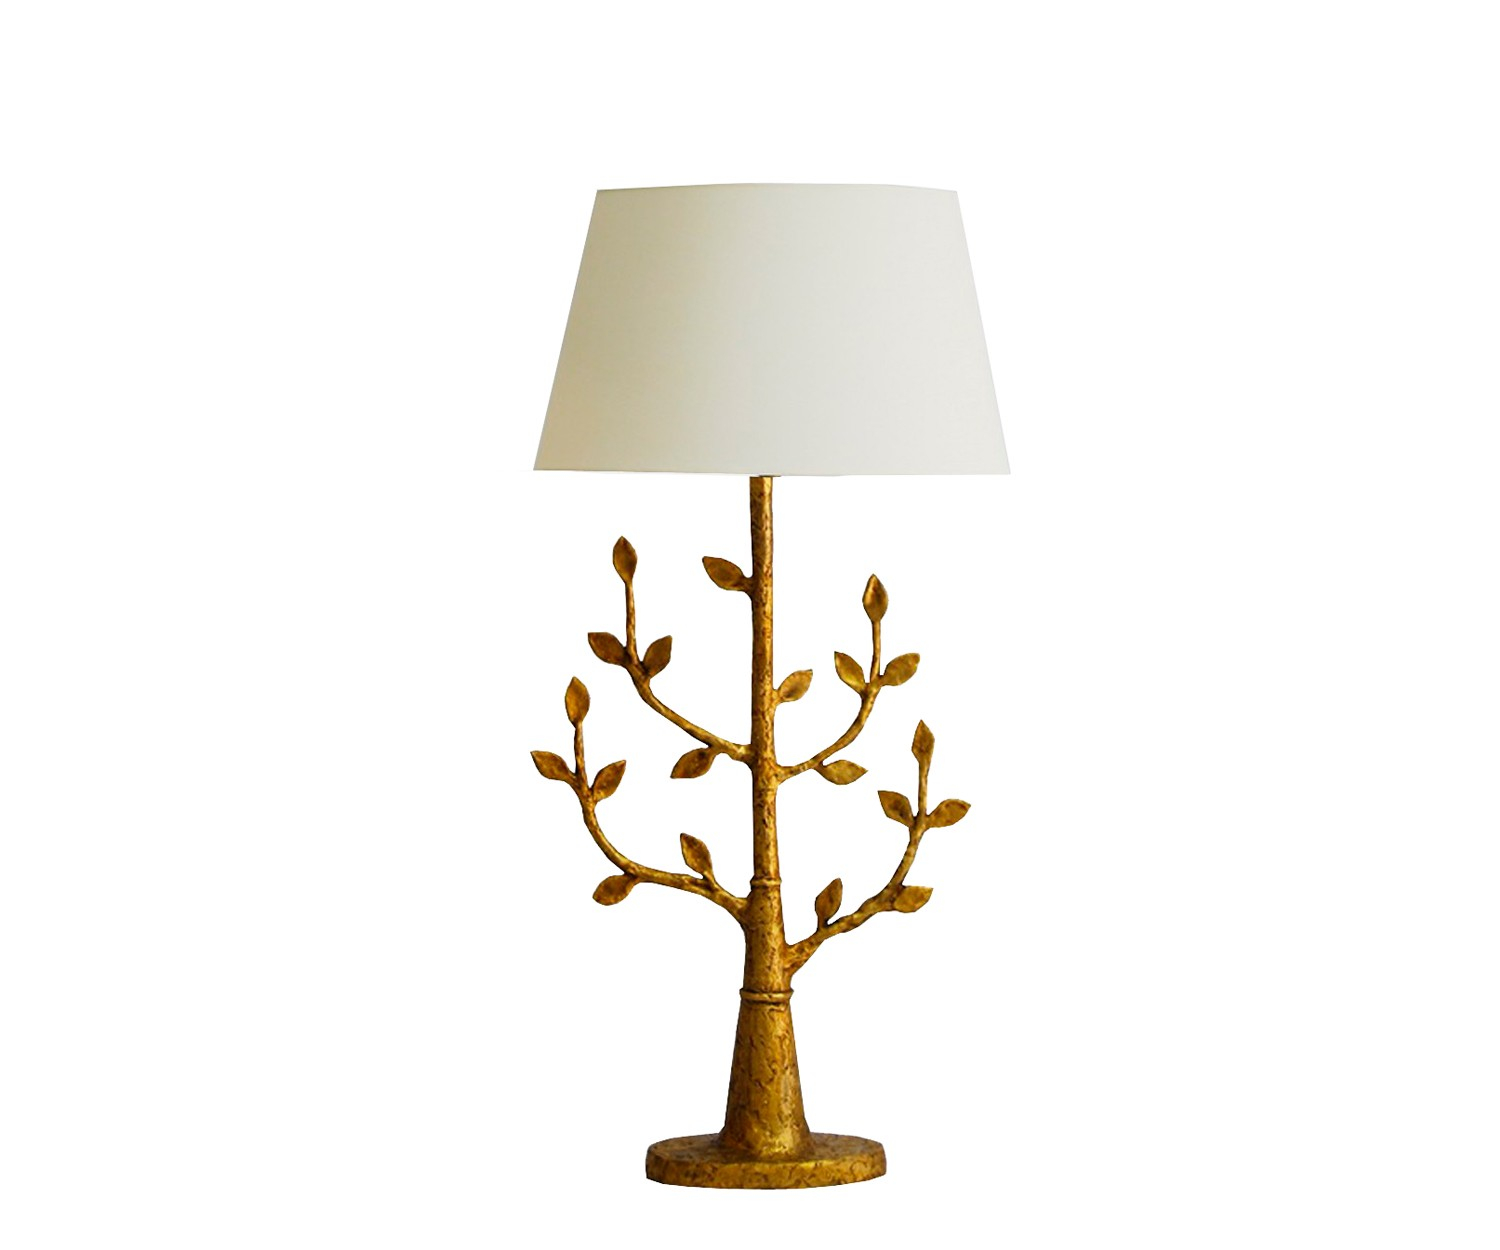 Milla Bronze Table Lamp In Gilded Finish pertaining to dimensions 1500 X 1250